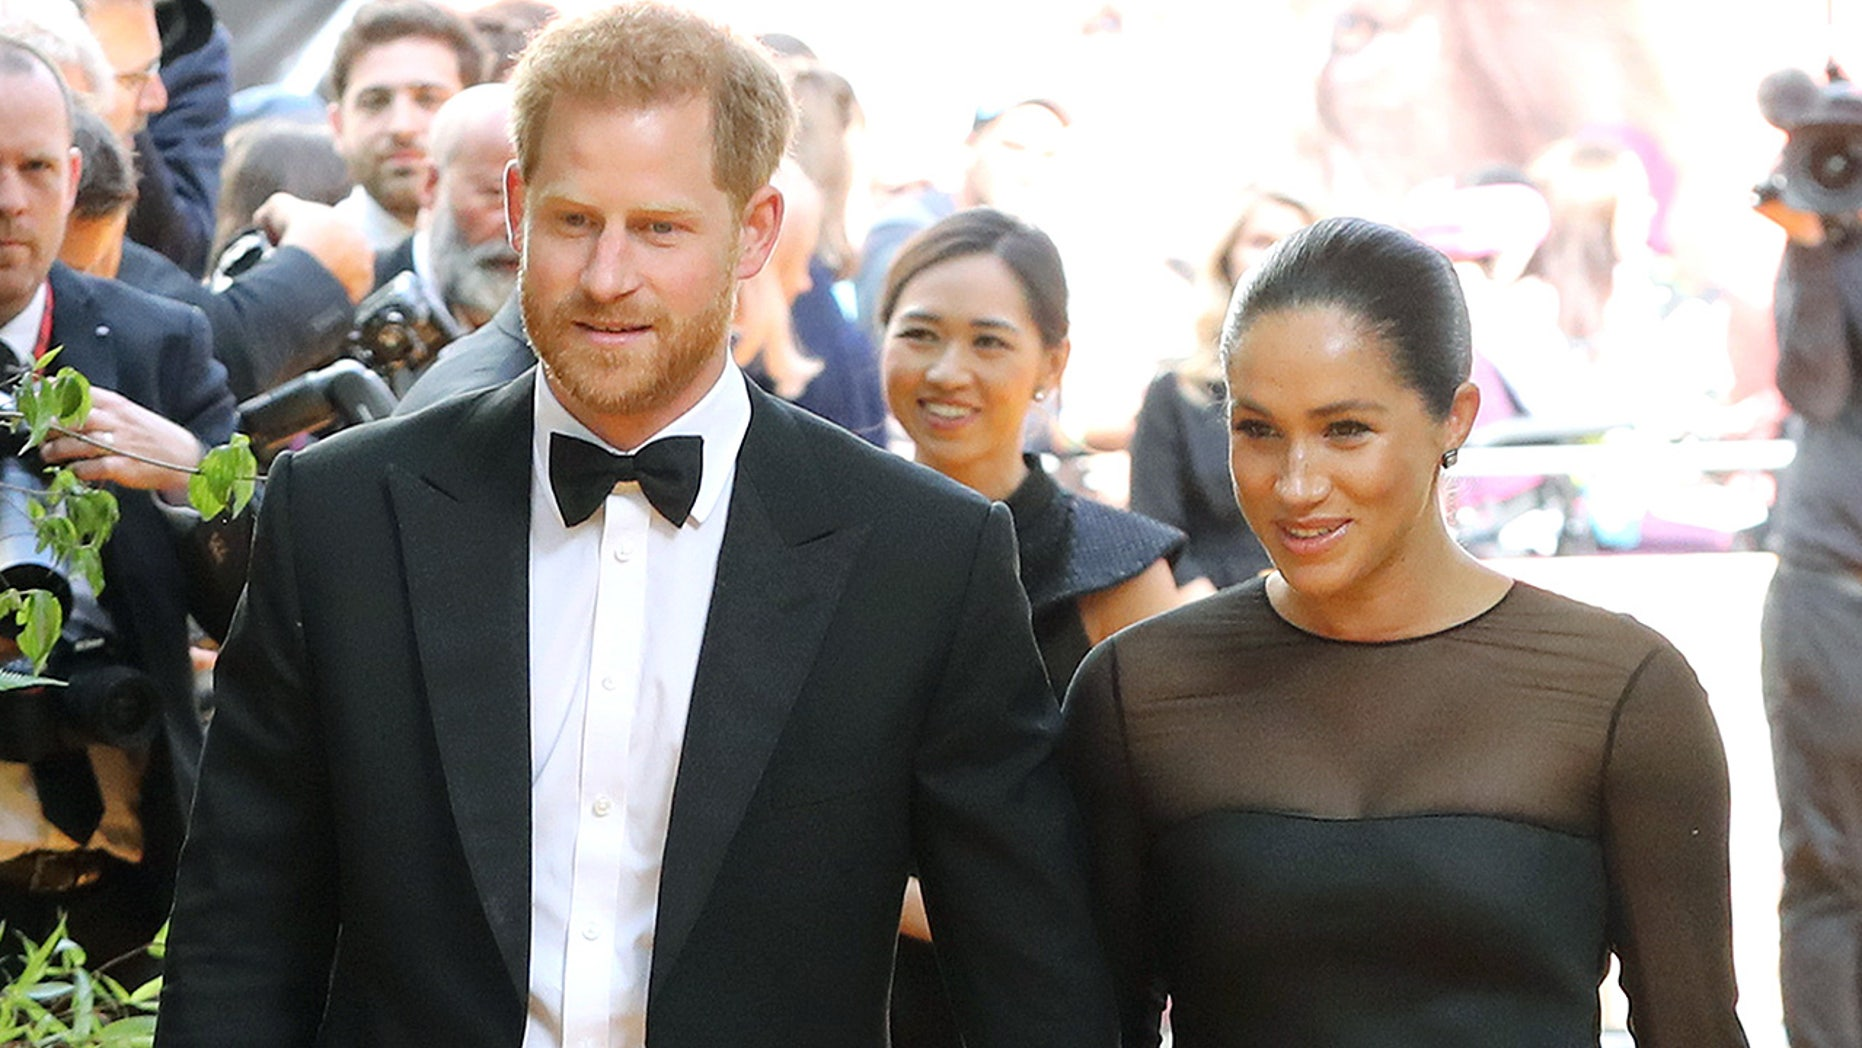 London, England - July 14: Prince Harry, Duke of Sussex and Megan, Duchess of Sussex